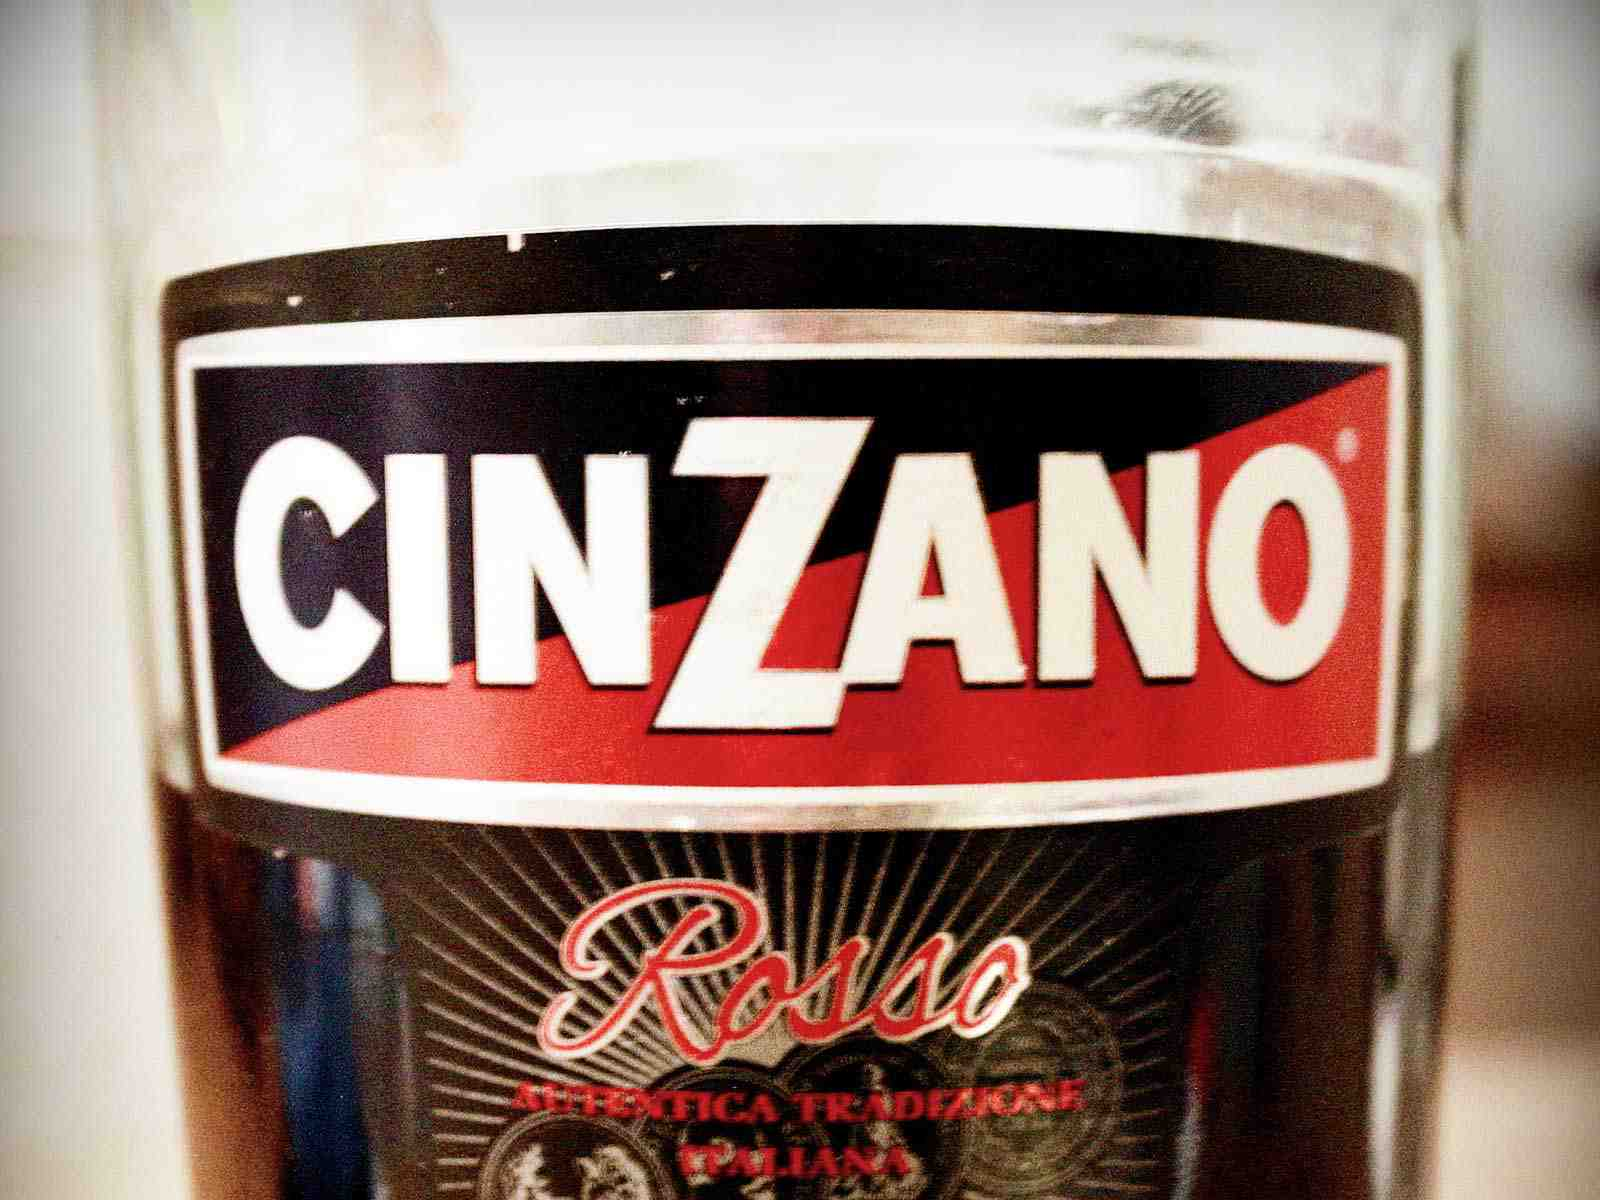 Vermouth | Cinzano - 50 ml